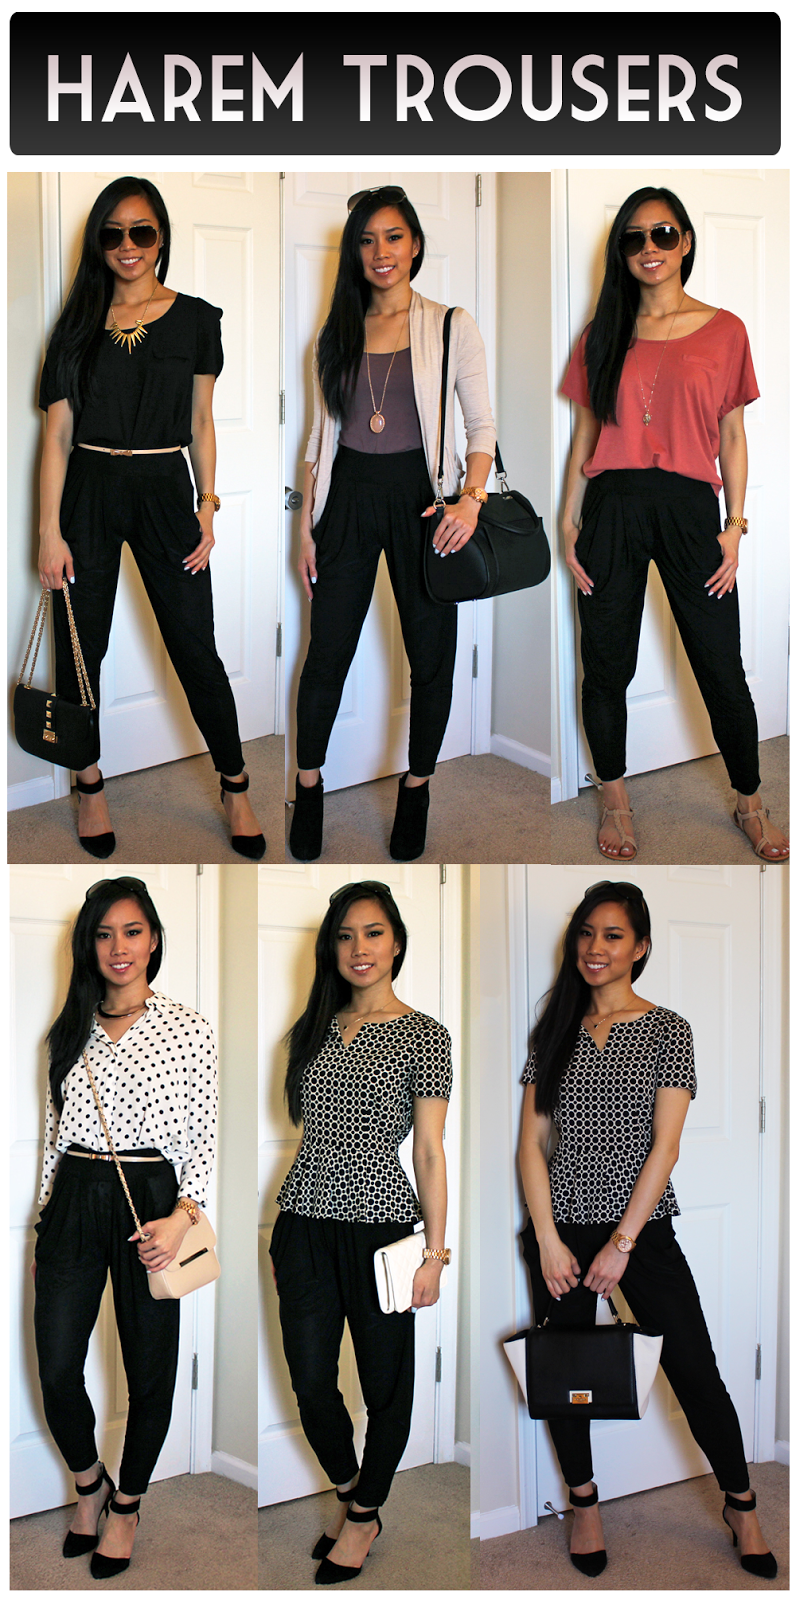 Among the alternatives to skinny jeans (such as wide-leg pants and boyfriend jeans), harem pants are consistent bestsellers on YesStyle in both the menswear and women's categories.